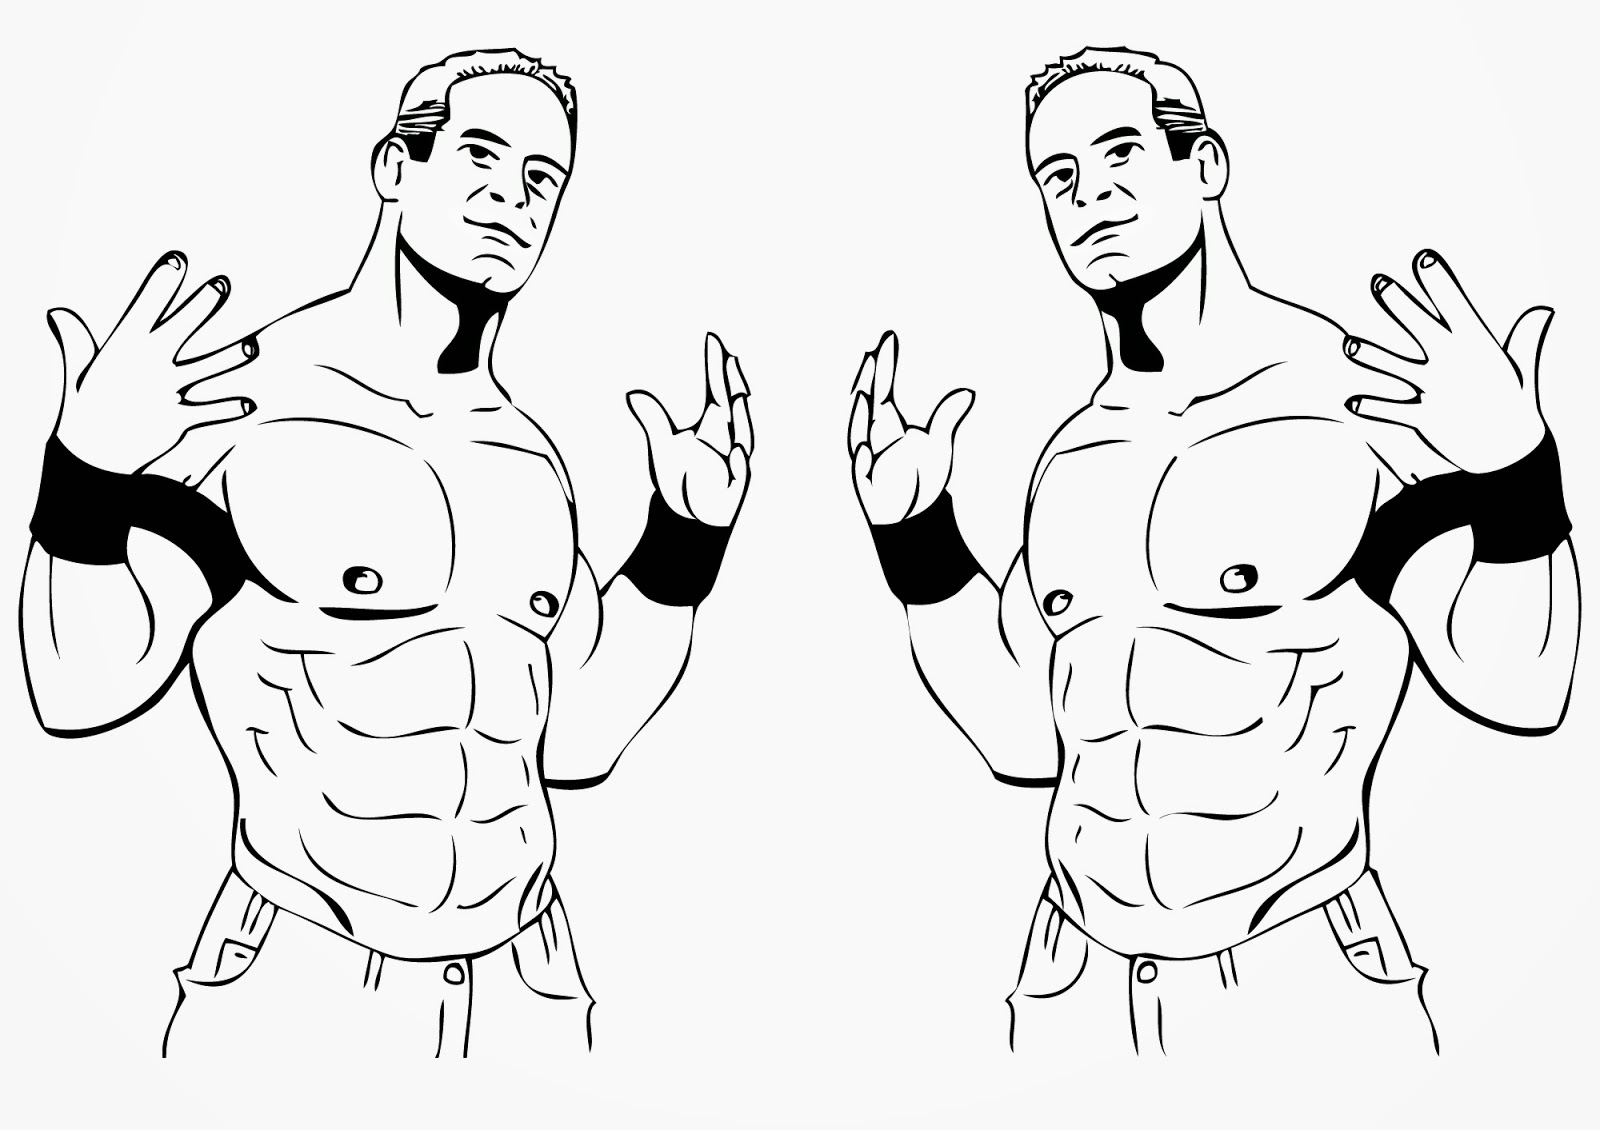 Wwe Coloring Pages Cm Punk - Coloring Home